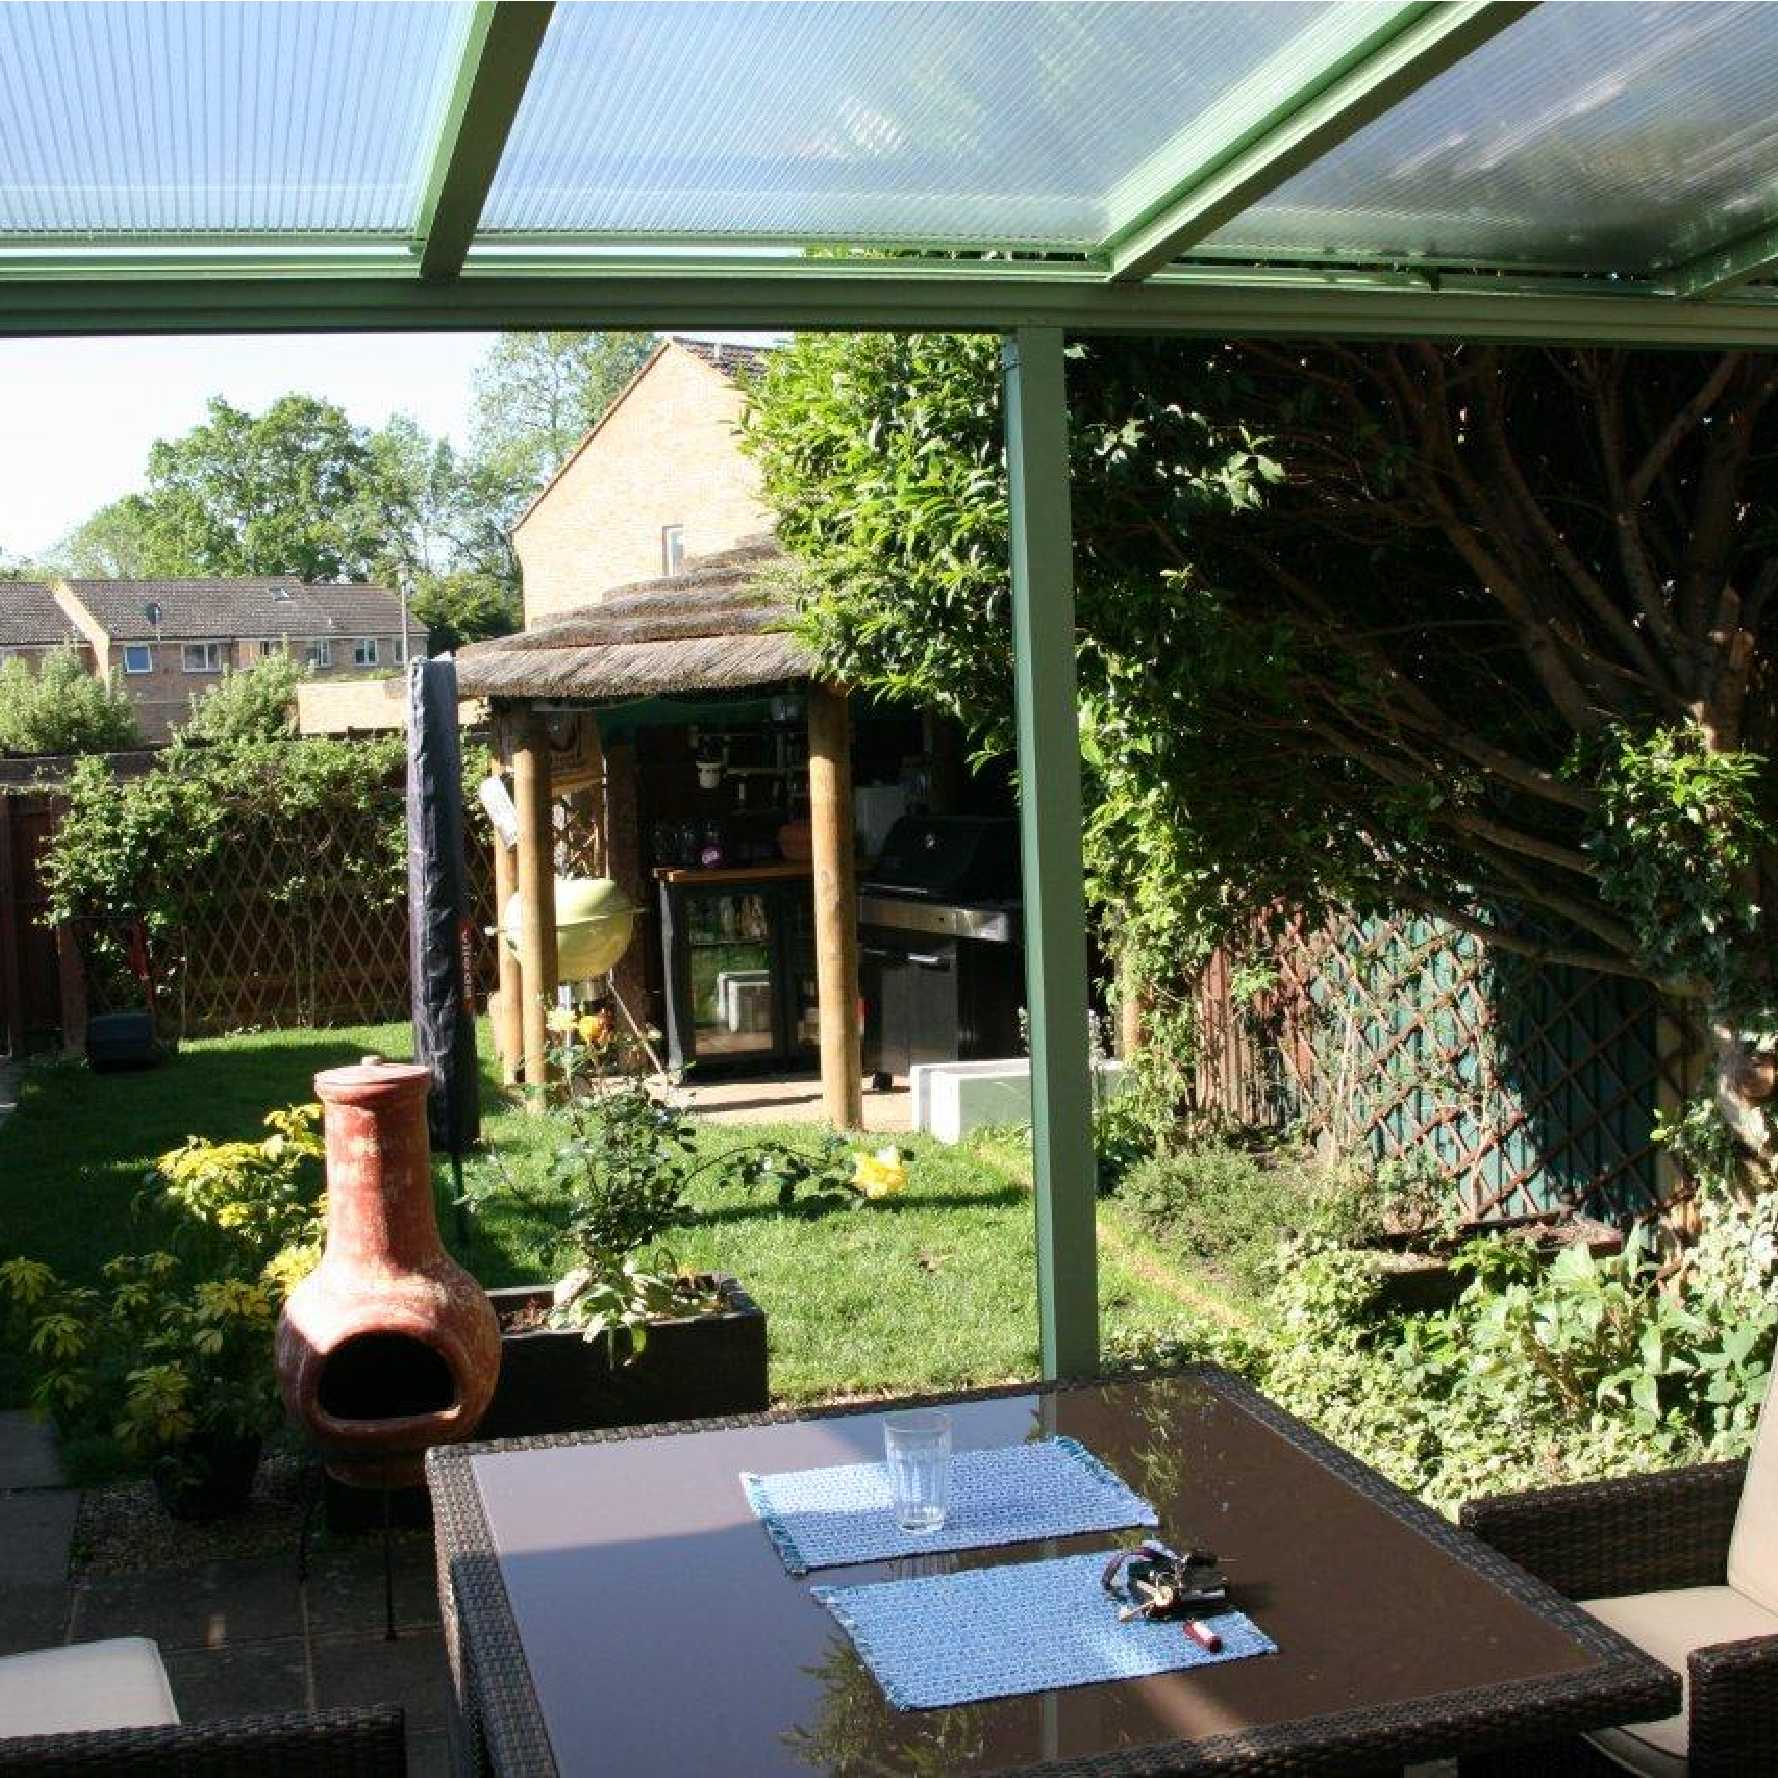 Affordable Omega Smart White Lean-To Canopy with 16mm Polycarbonate Glazing - 8.4m (W) x 4.5m (P), (4) Supporting Posts